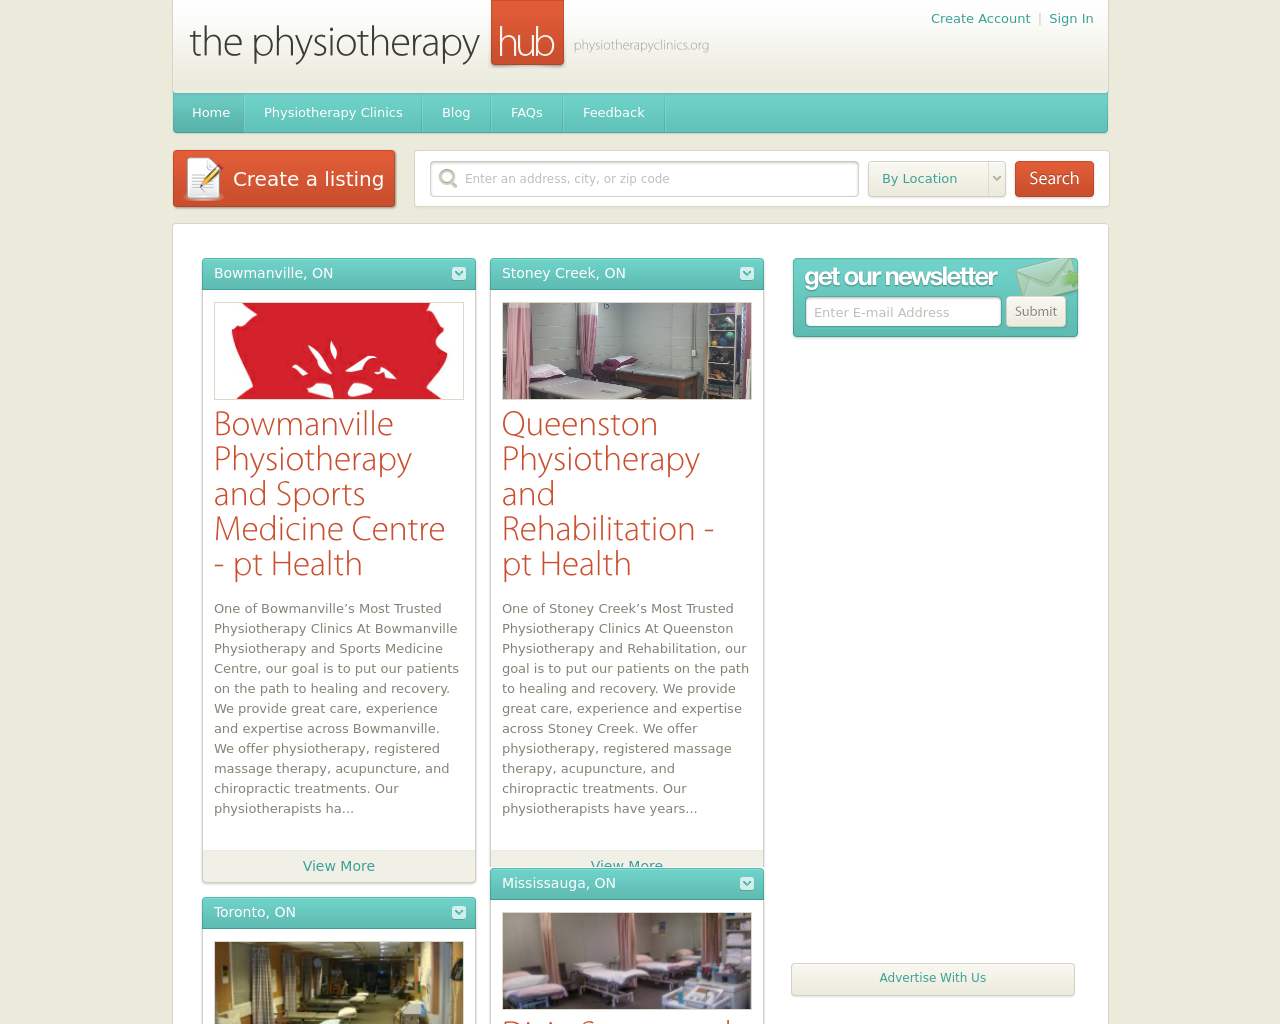 The-Physiotherapy-Hub-Advertising-Reviews-Pricing